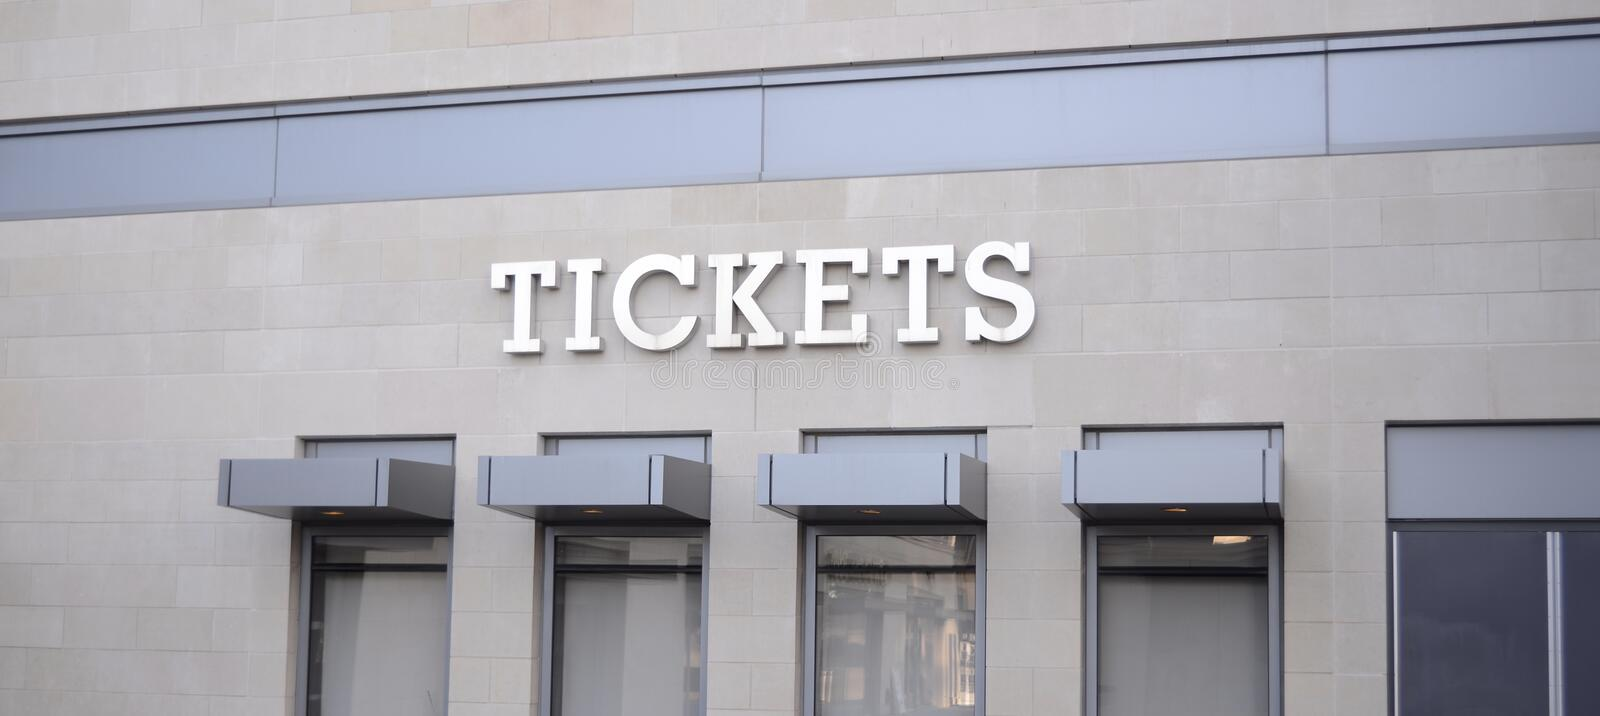 Tickets for Sporting Events, Concerts and Playhouse Venues royalty free stock image